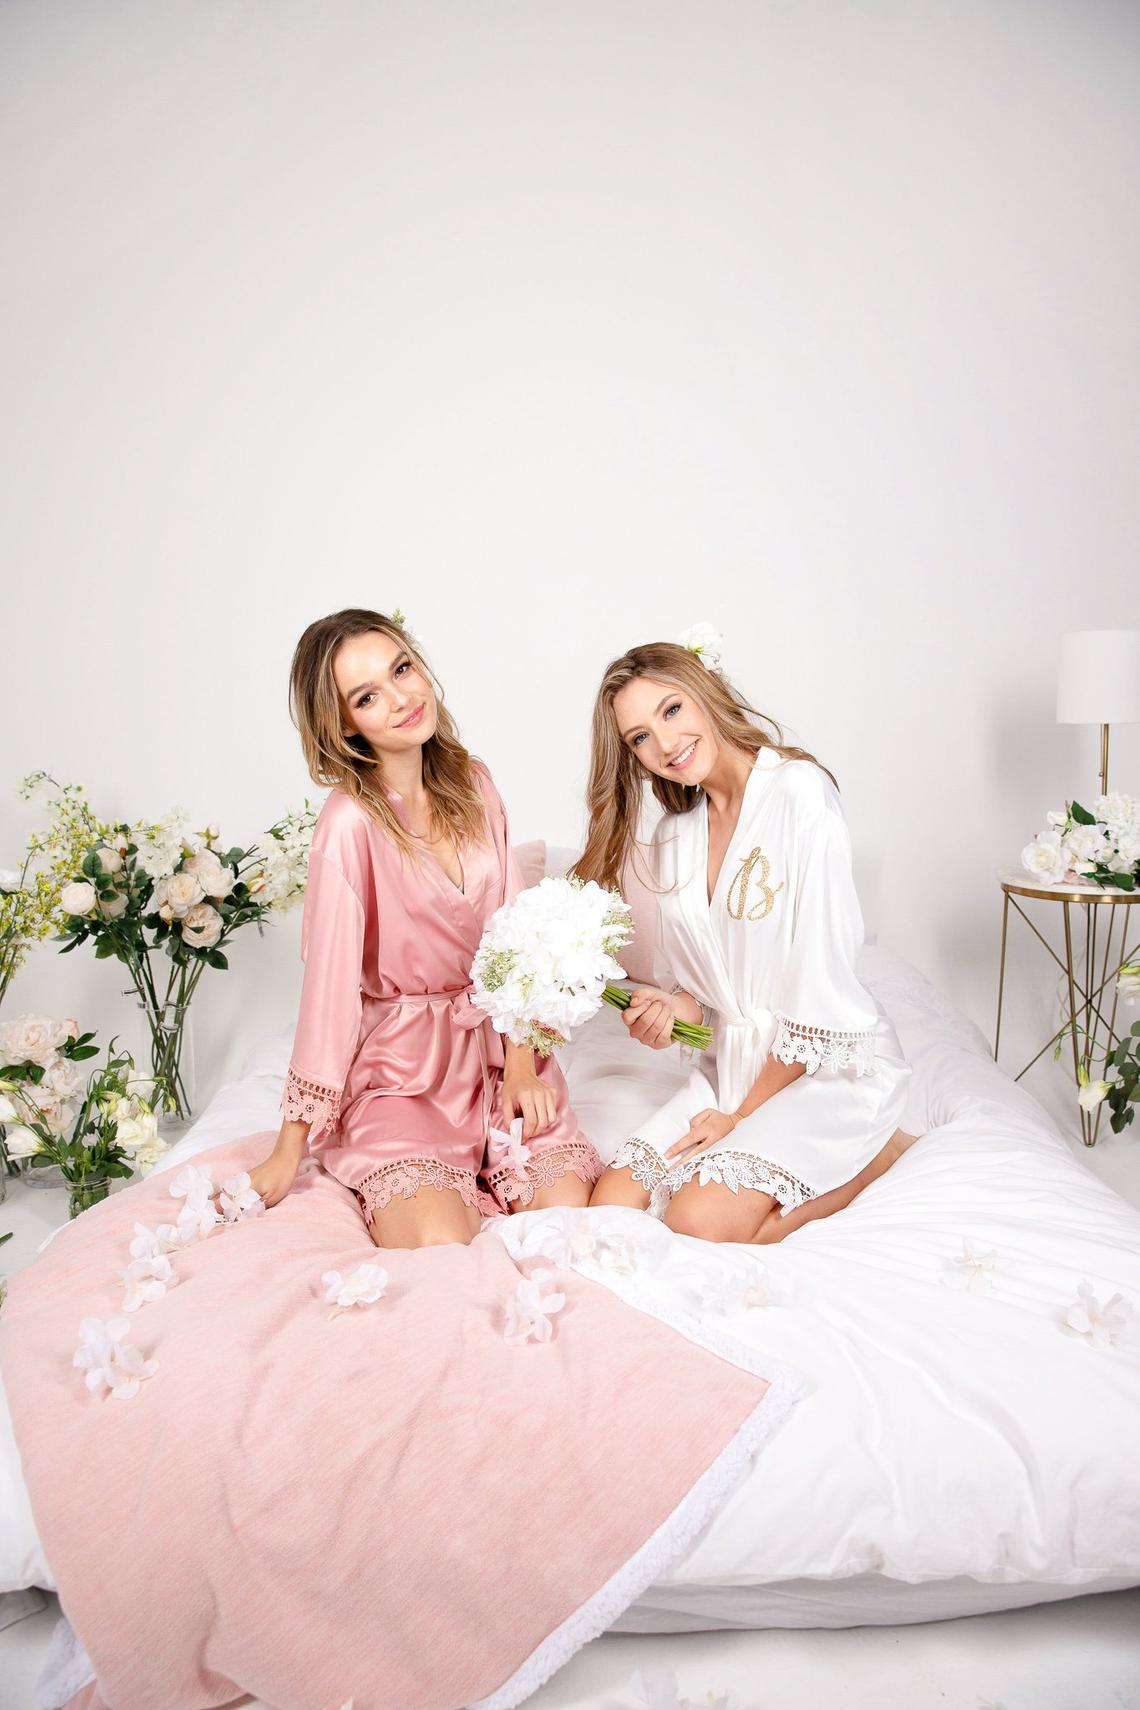 Bridal lace robes Wedding Bridesmaid Gifts.jpg